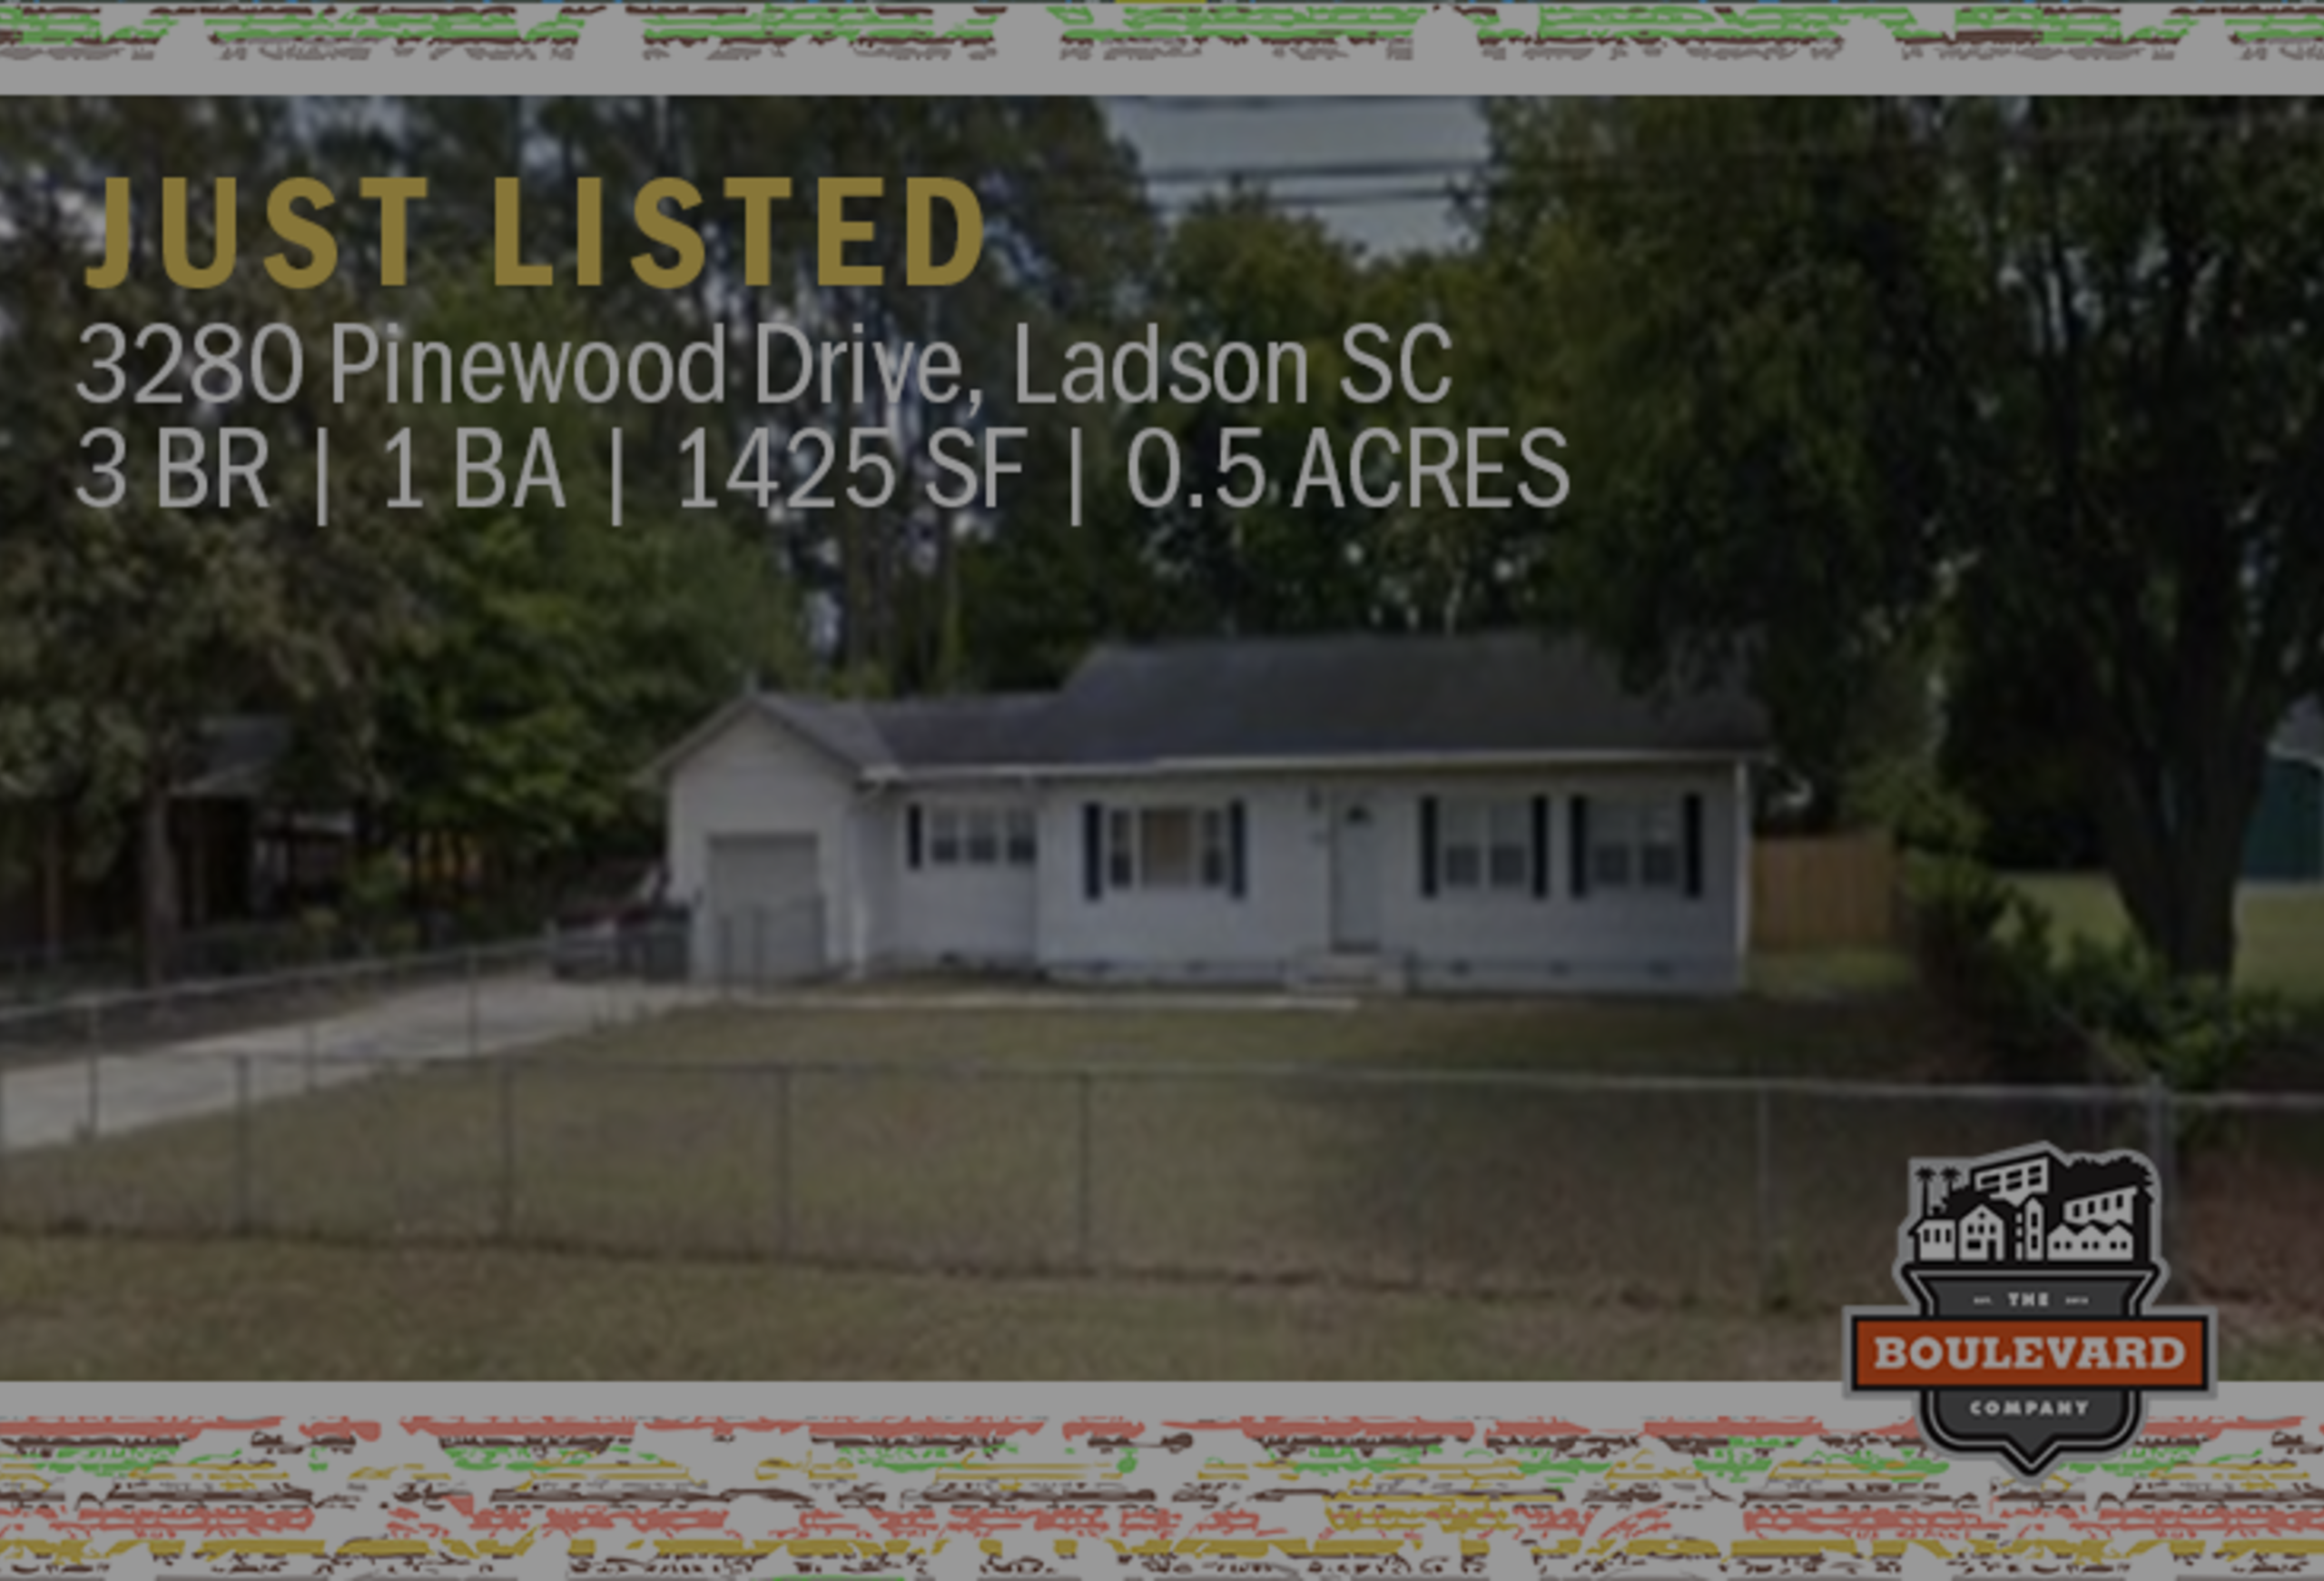 new listing: 3280 Pinewood Drive in Ladson